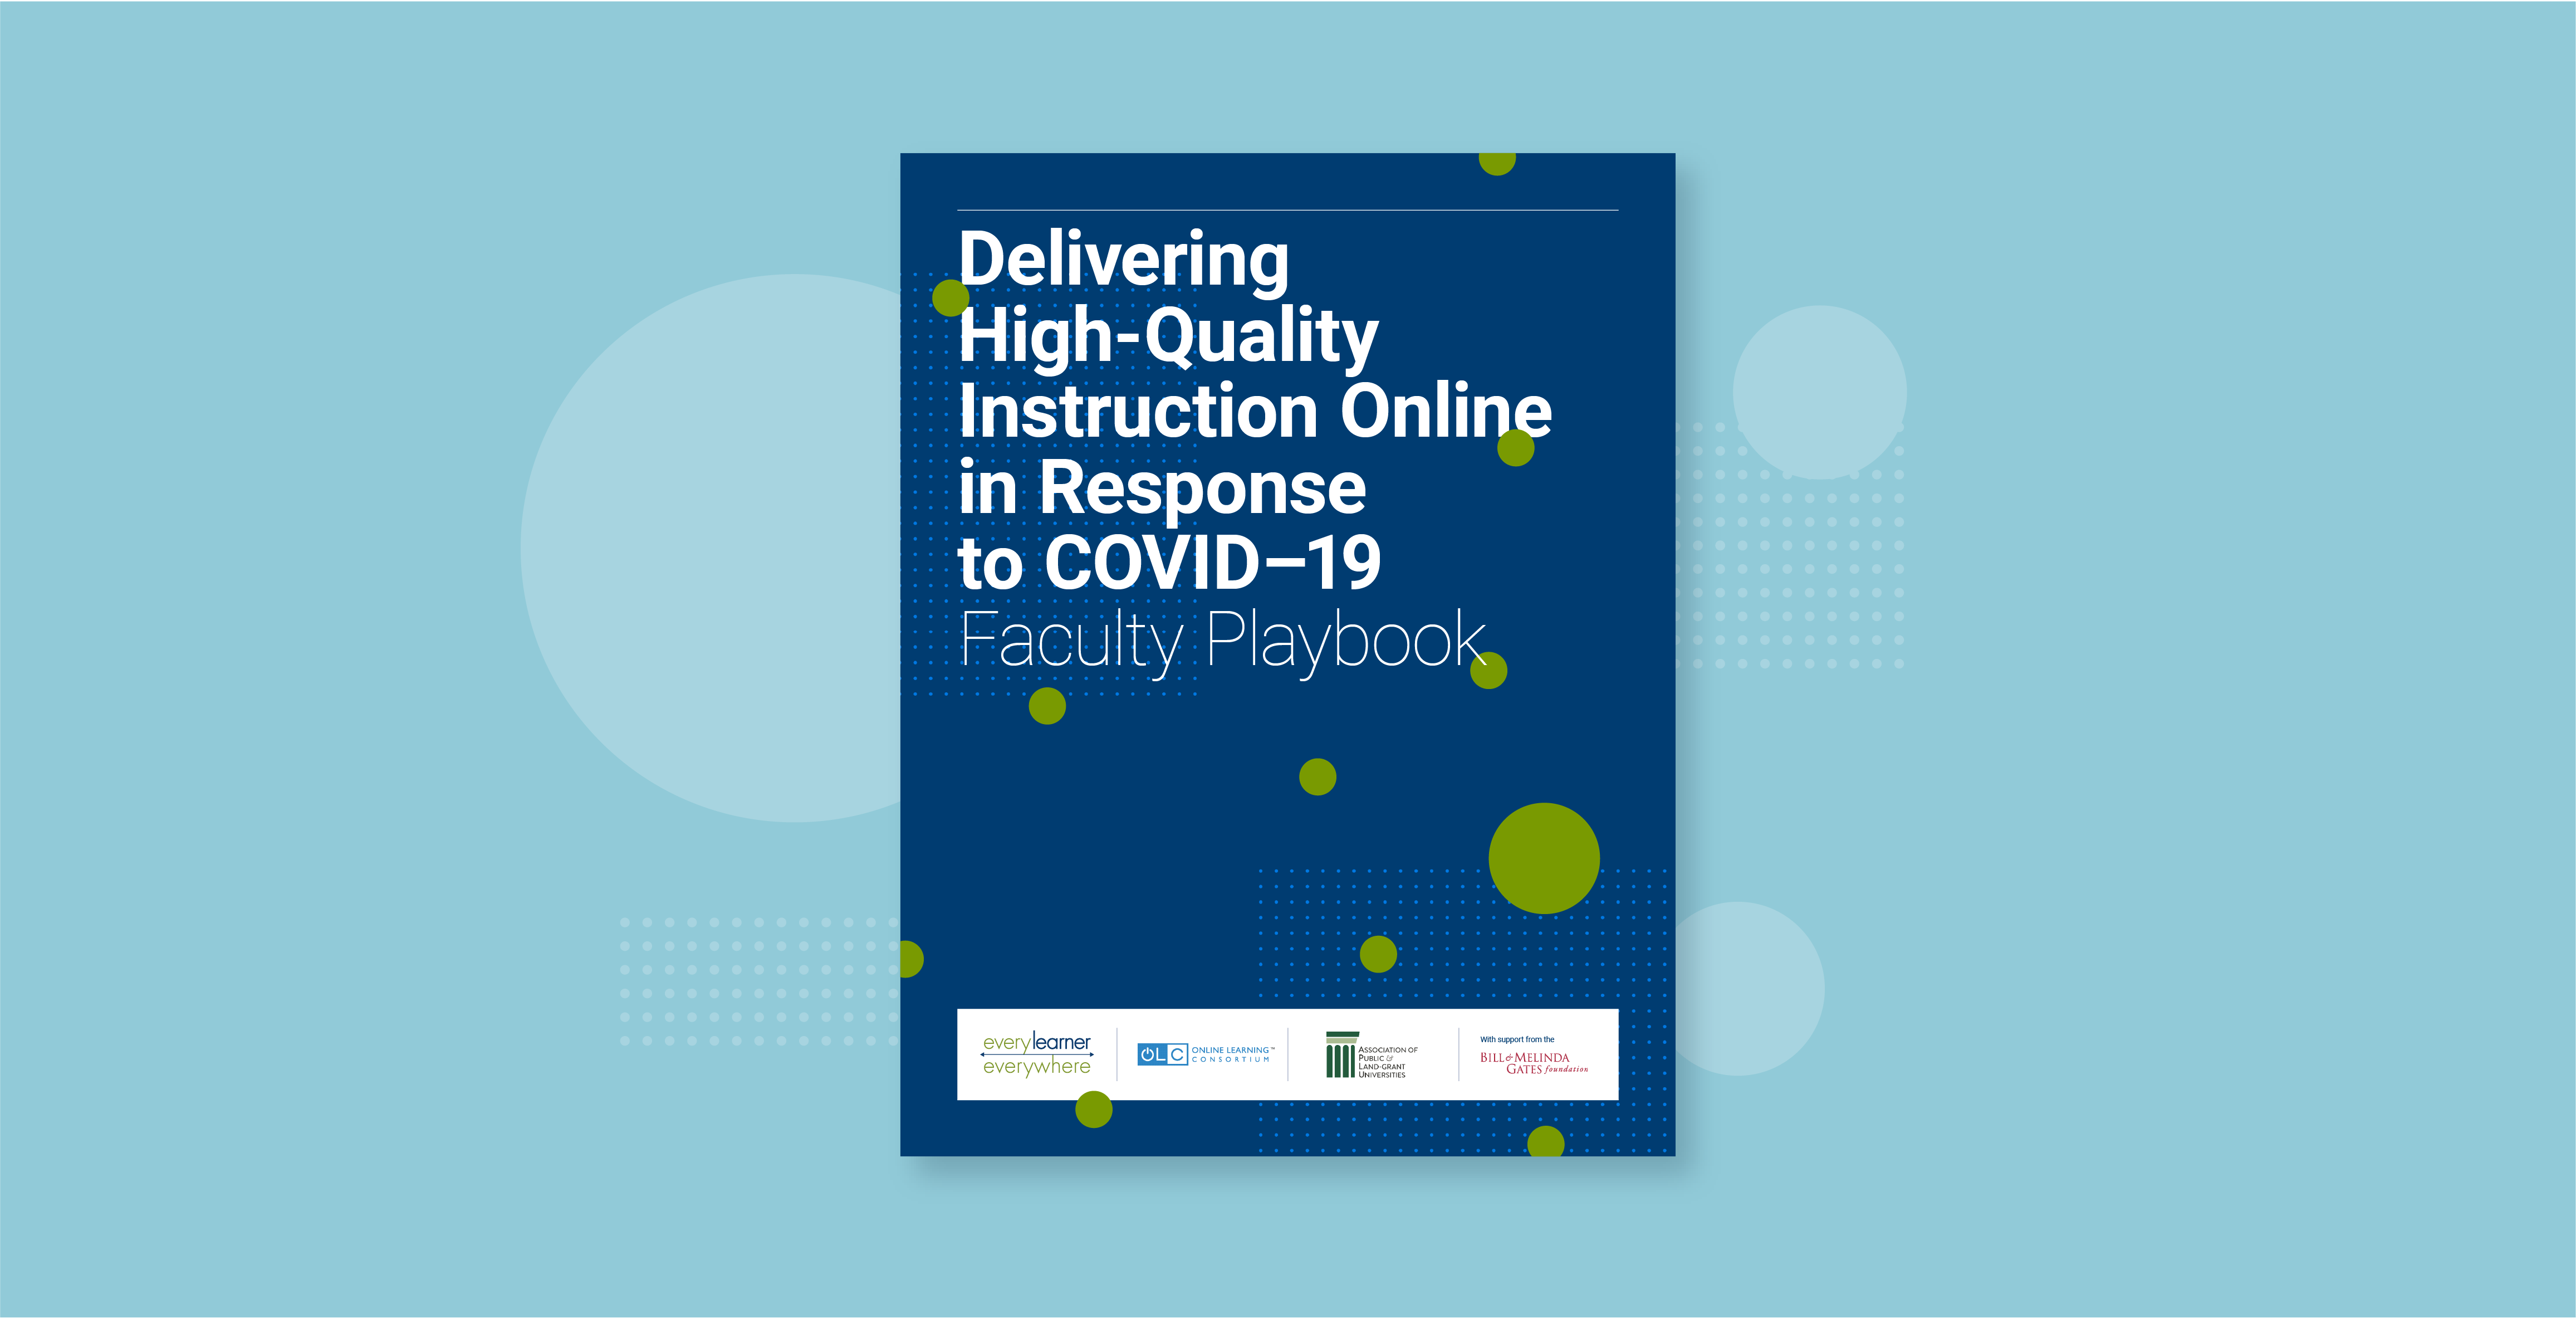 Delivering High-Quality Instruction Online in Response to COVID-19 Faculty Playbook